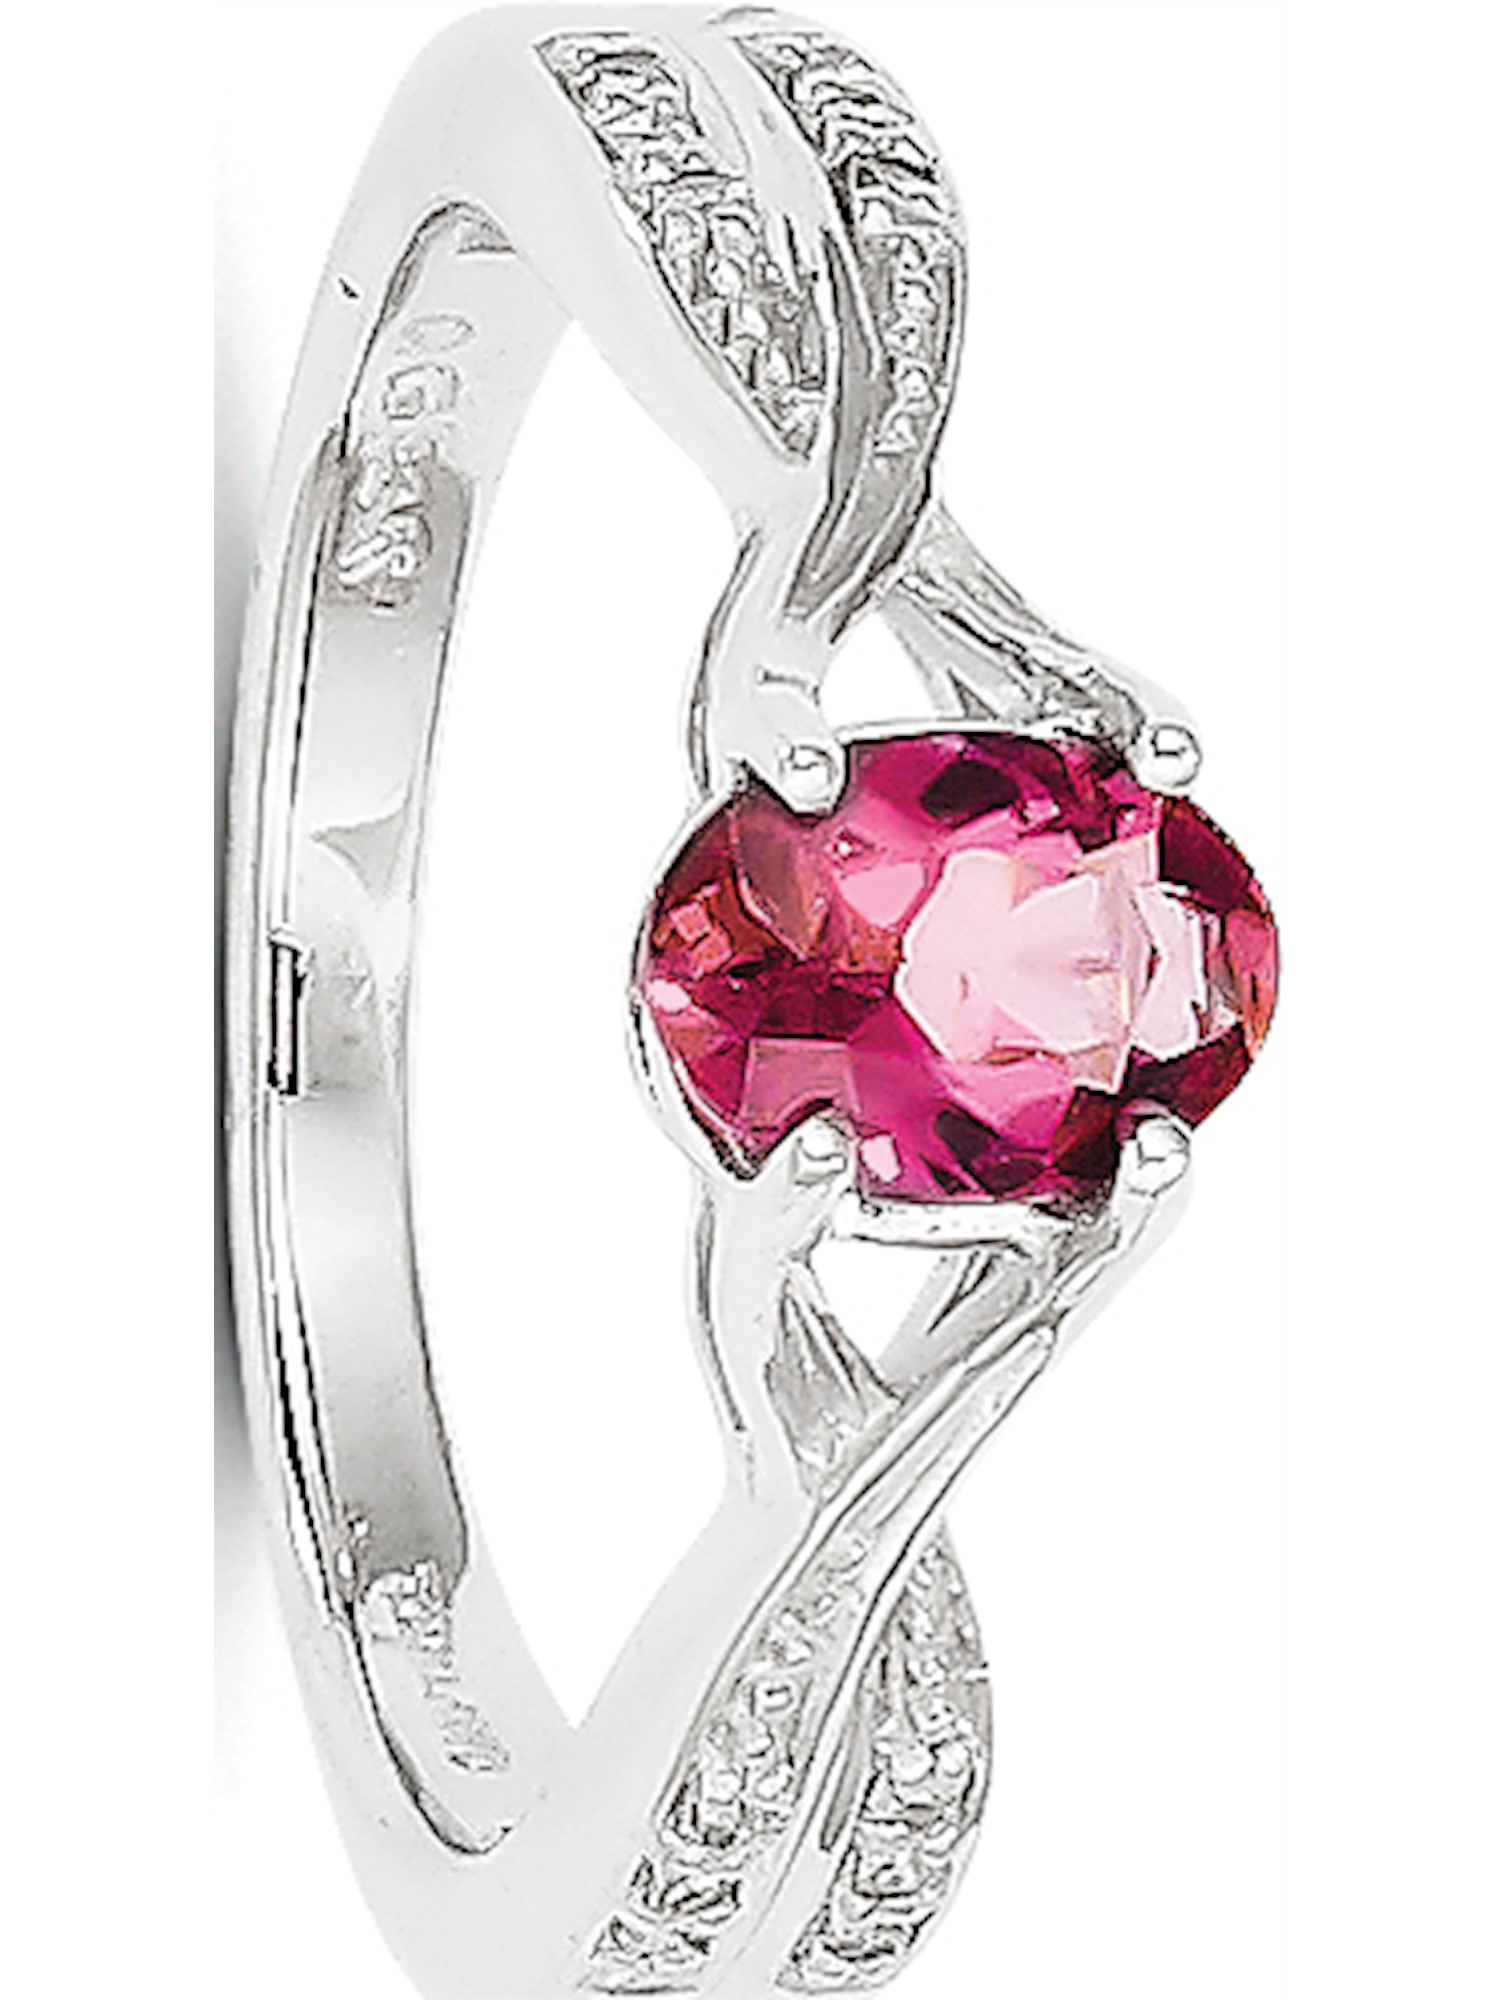 14k White Gold White Pink Tourmaline and Diamond Ring by Tourmaline Rings